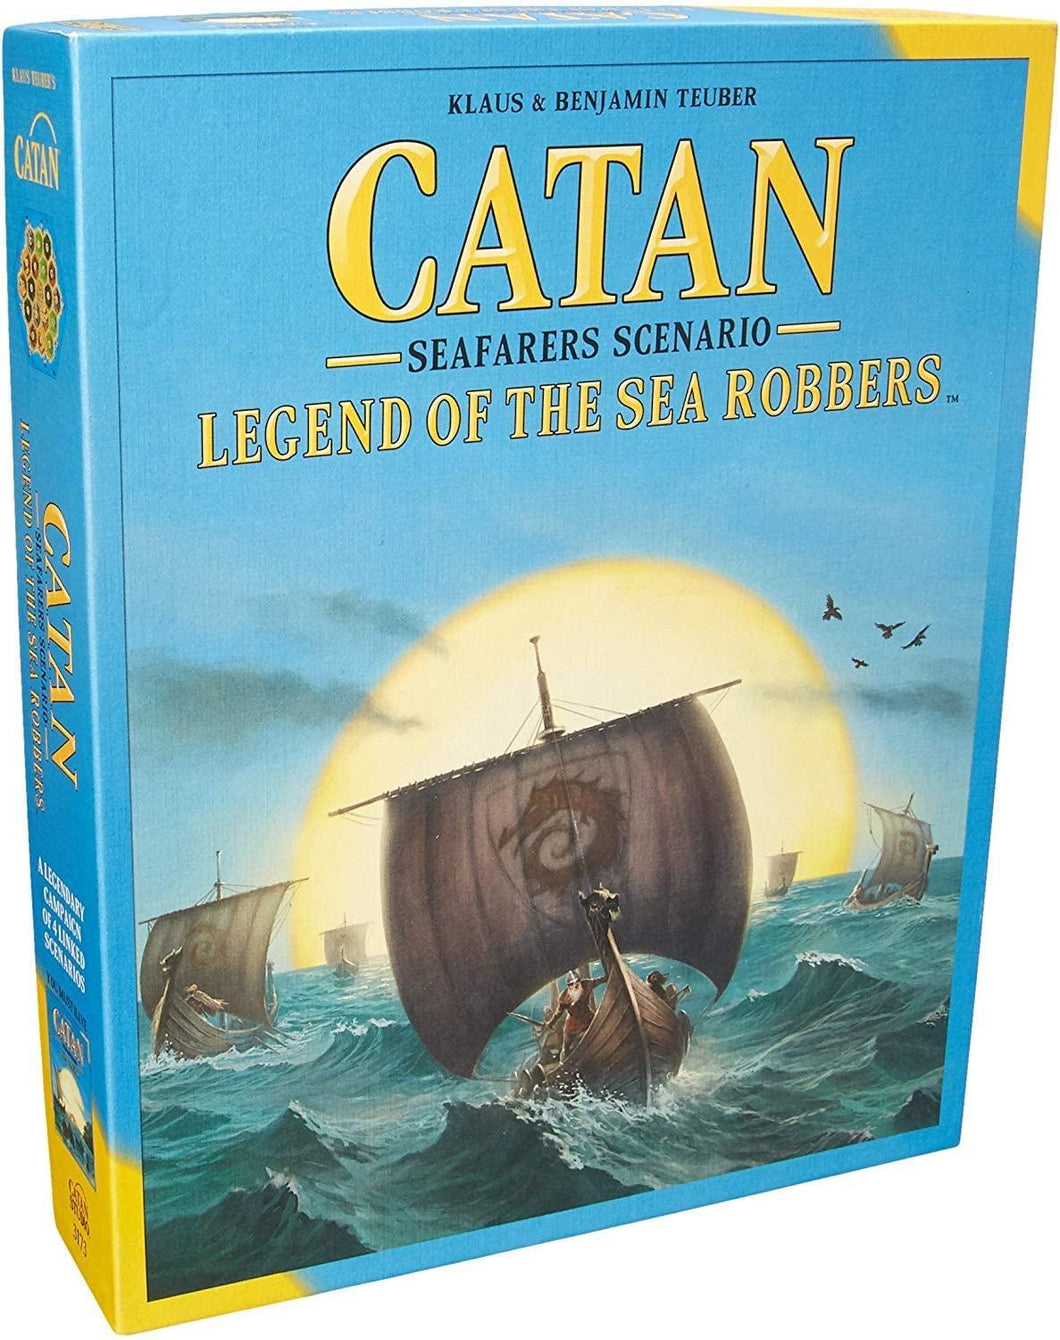 Catan: Legend of the Sea Robbers Expansion/Scenario